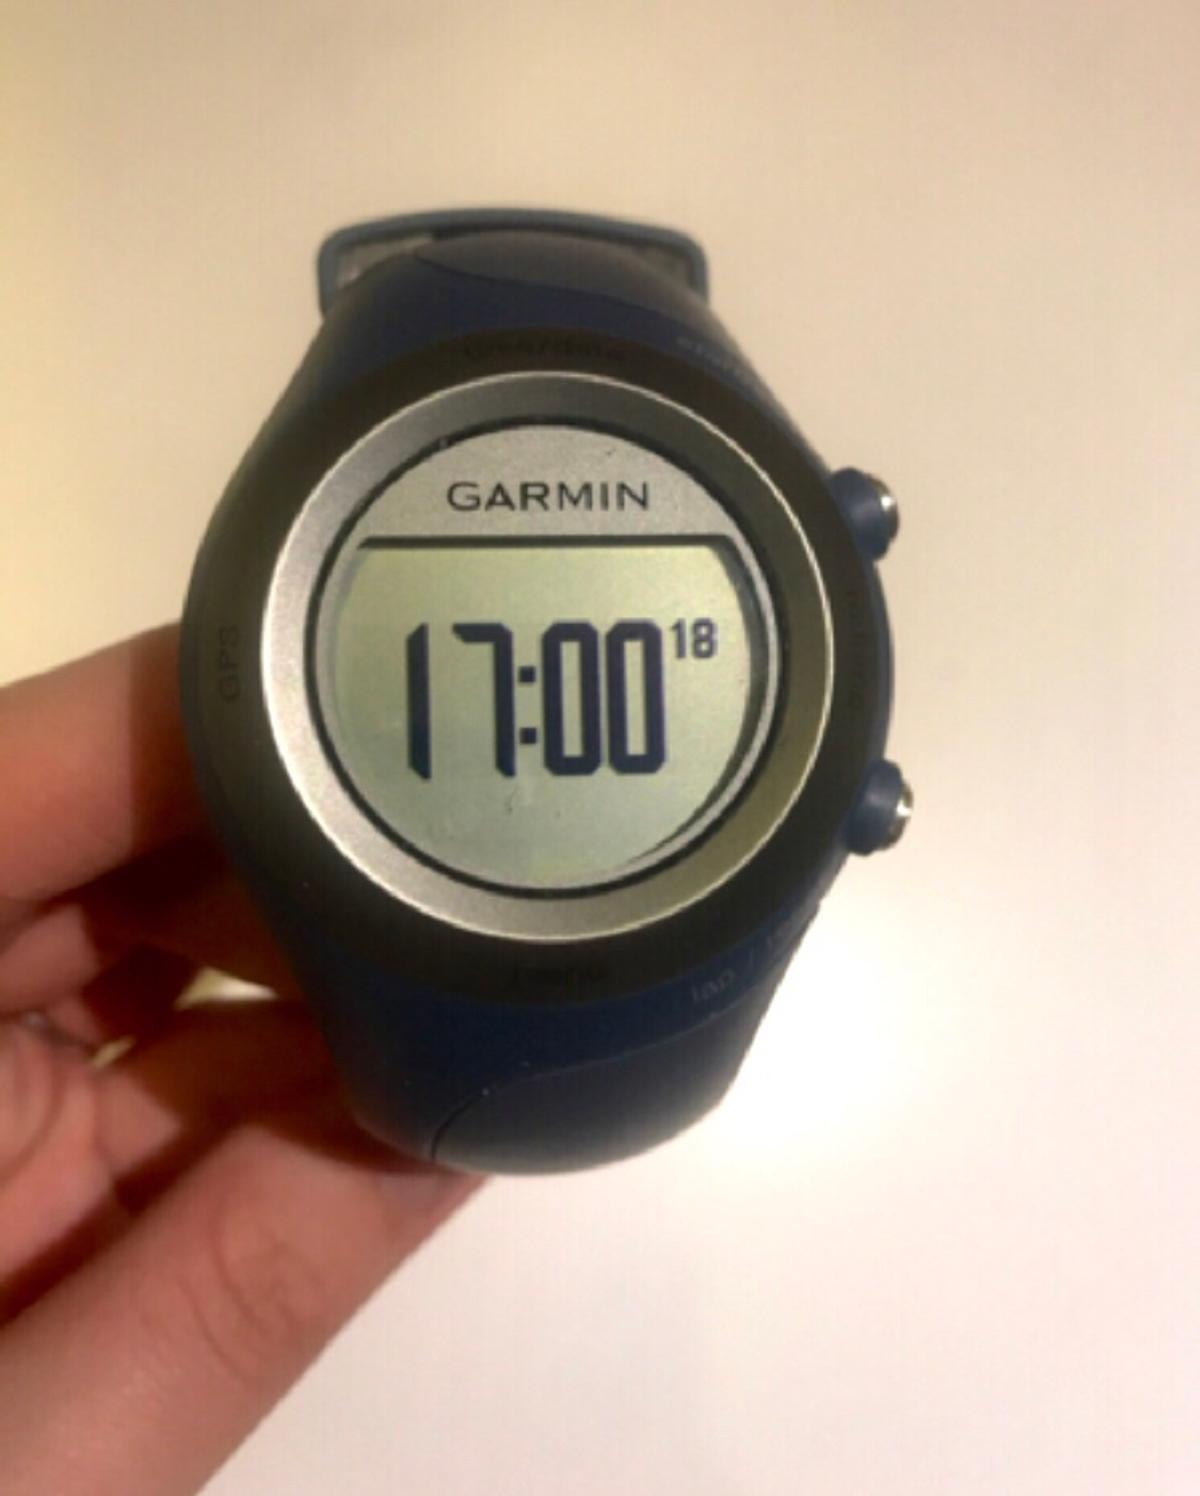 Garmin Forerunner 405cx heart rate monitor watch with GPS  Used, in excellent condition. Unboxed.  Includes: - Sports watch - Heart rate monitor belt - Extension for HR monitor belt - USB cable + charger - USB stick for uploading data onto Garmin software